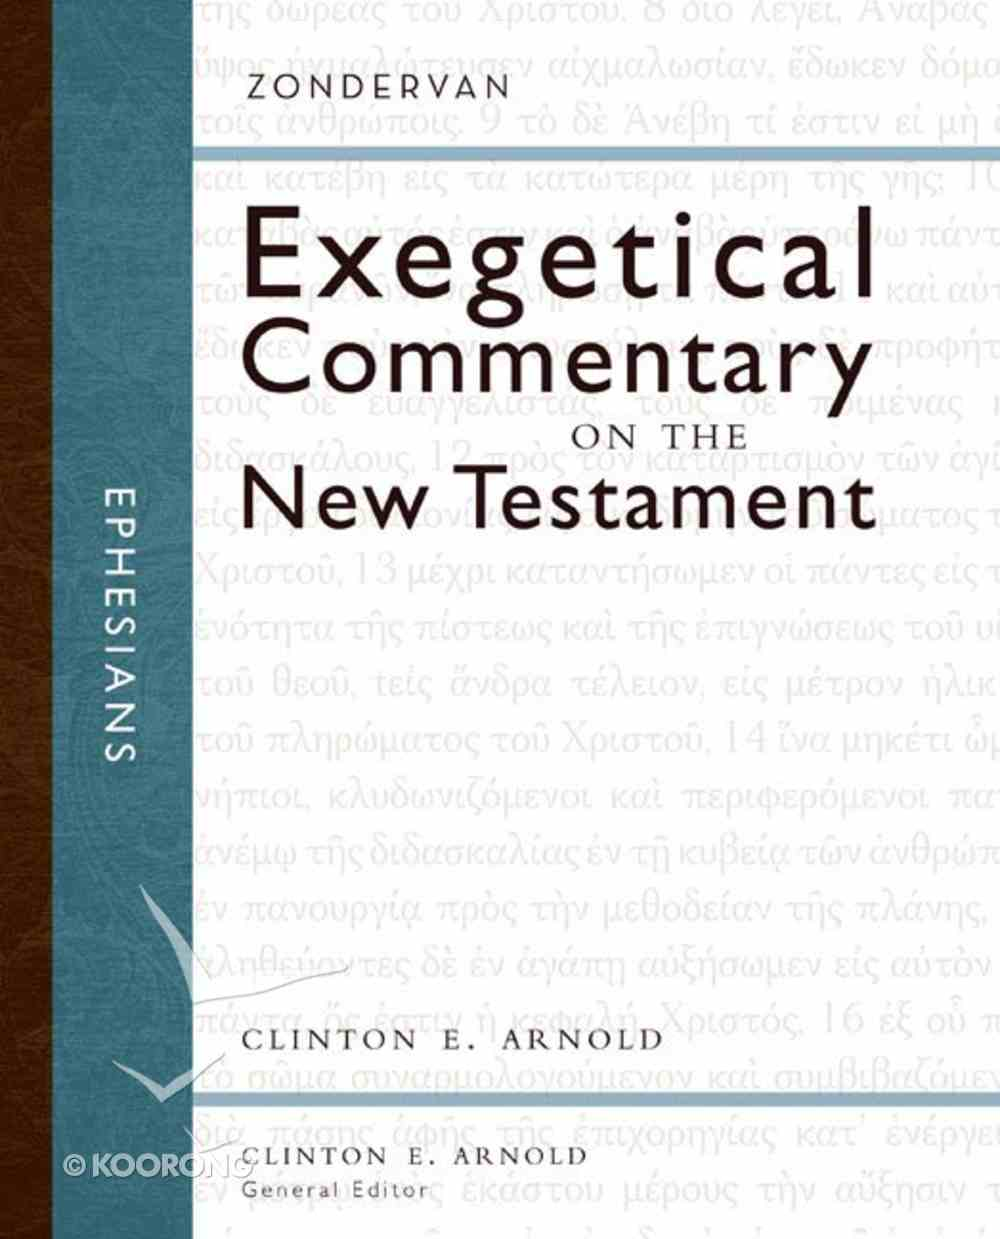 Ephesians (Zondervan Exegetical Commentary Series On The New Testament) eBook